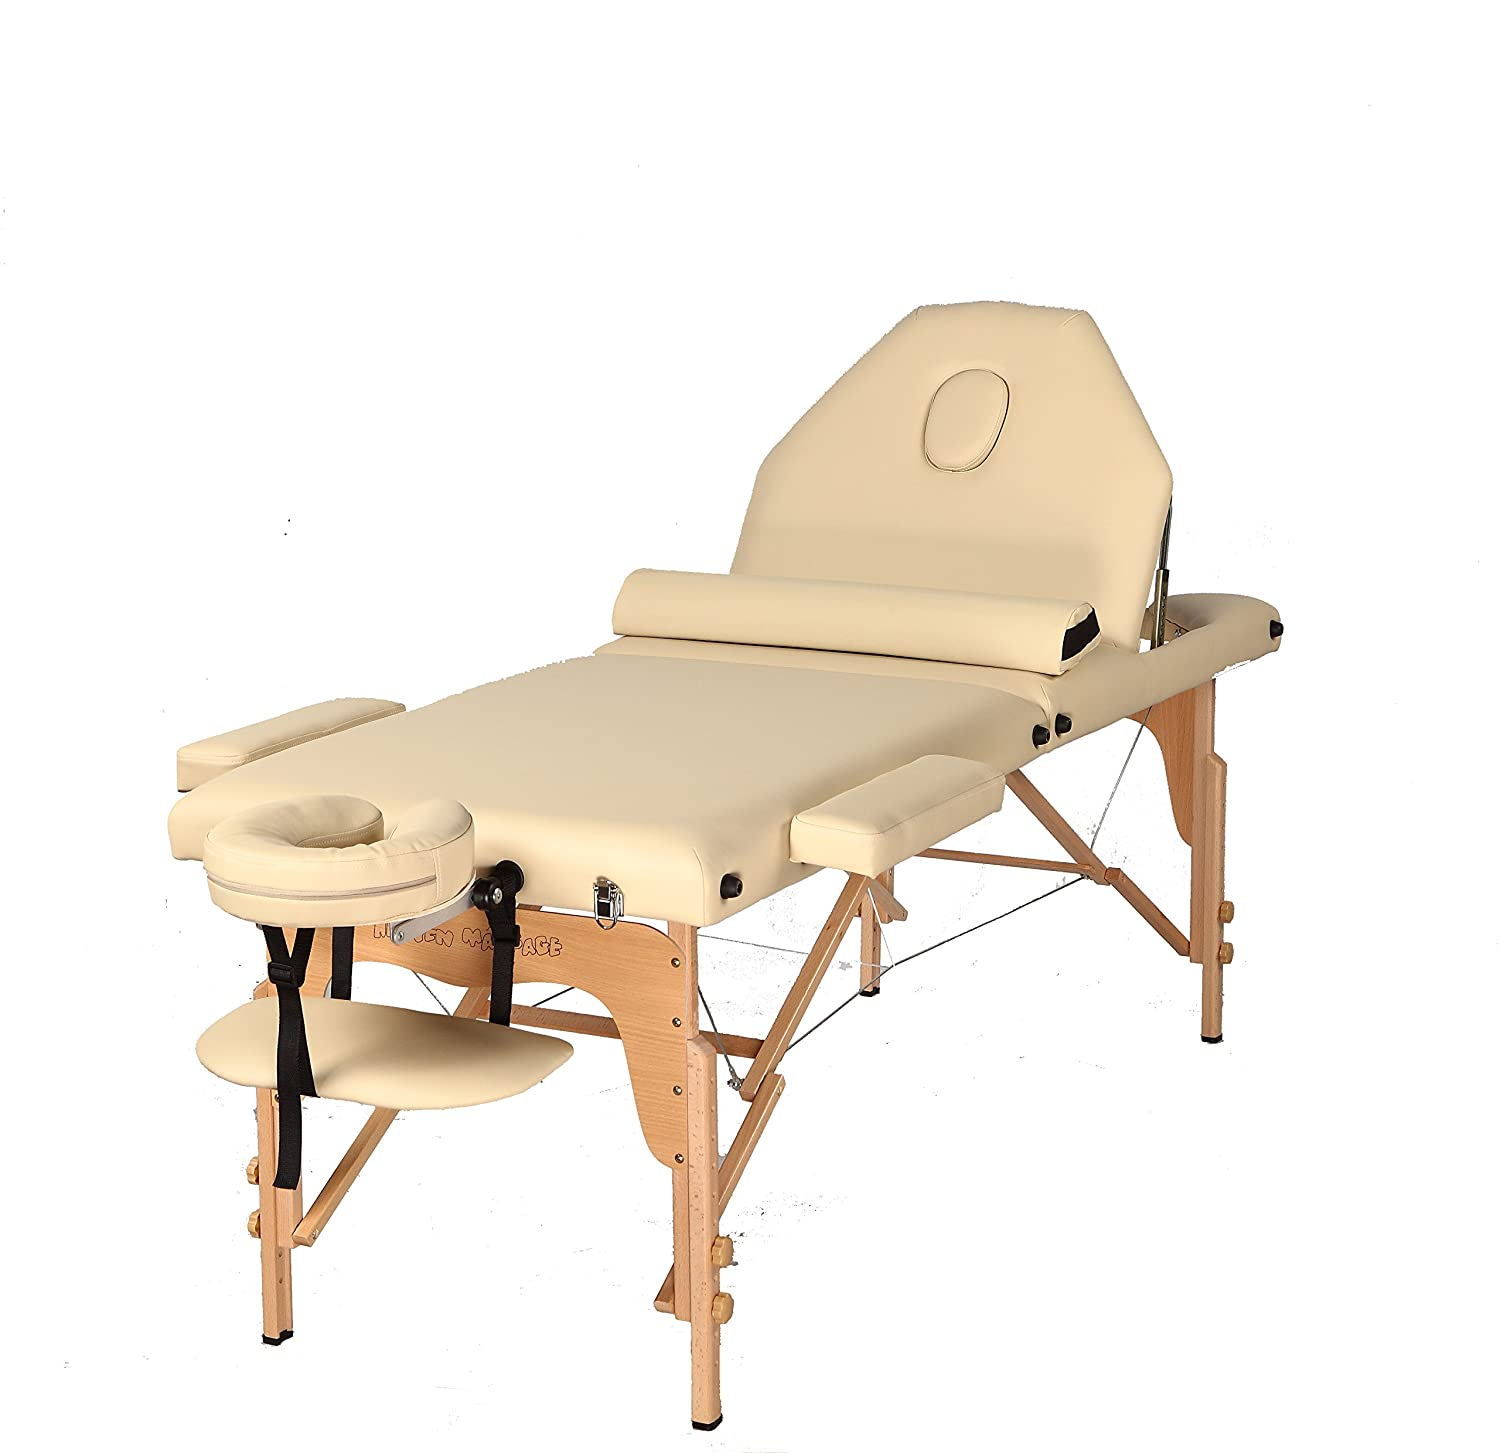 The Best Massage Table 3 Fold Reiki Portable Massage Table Free Half Bolster and Carry Case- PU Leather High Quality CREAM